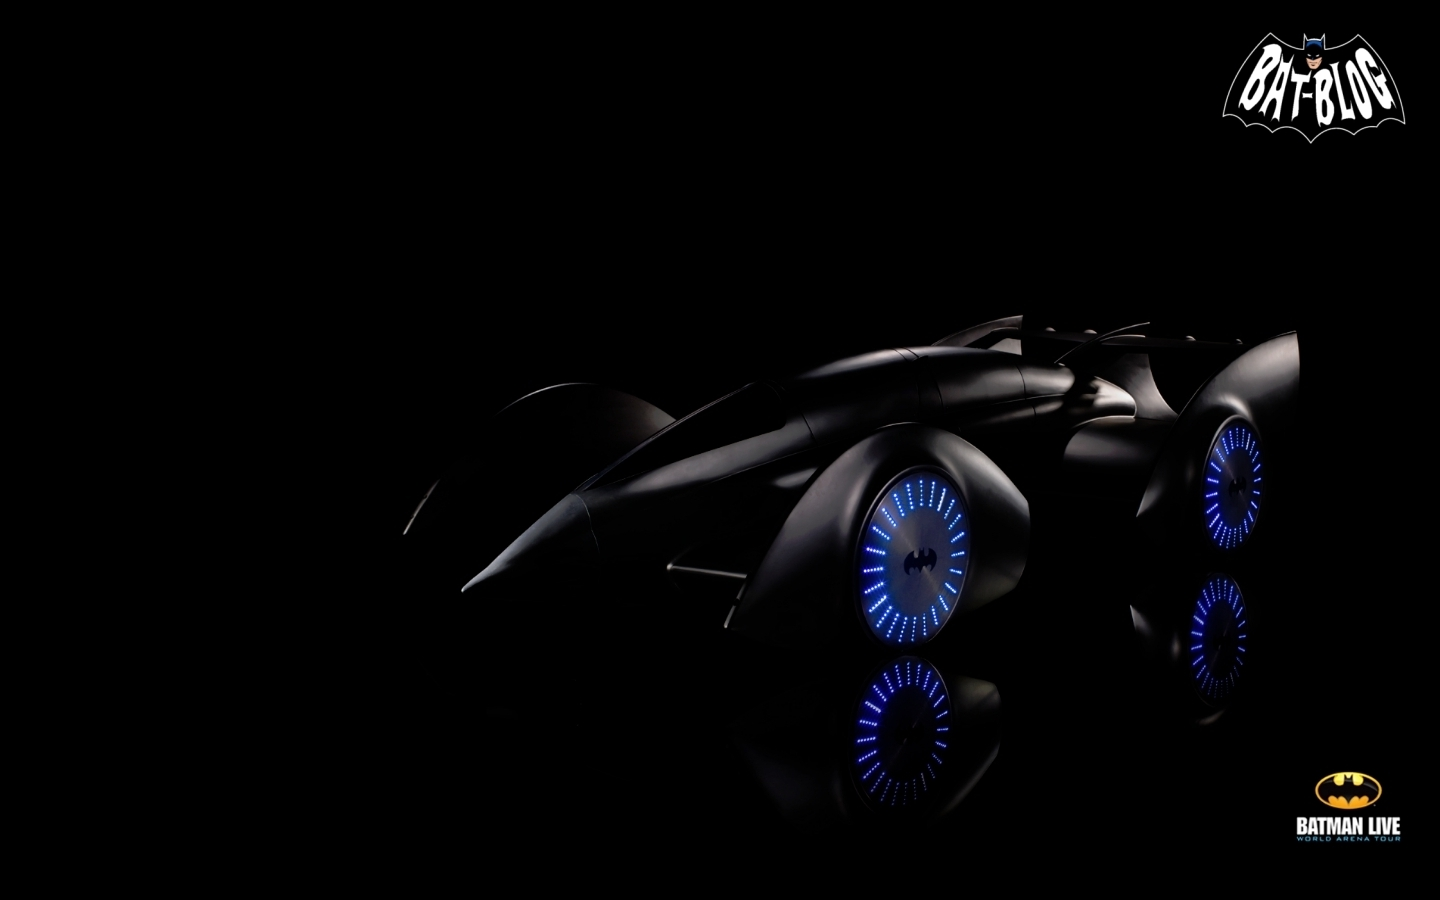 BATMAN LIVE BATMOBILE CAR   Desktop Wallpaper Backgrounds 1440x900